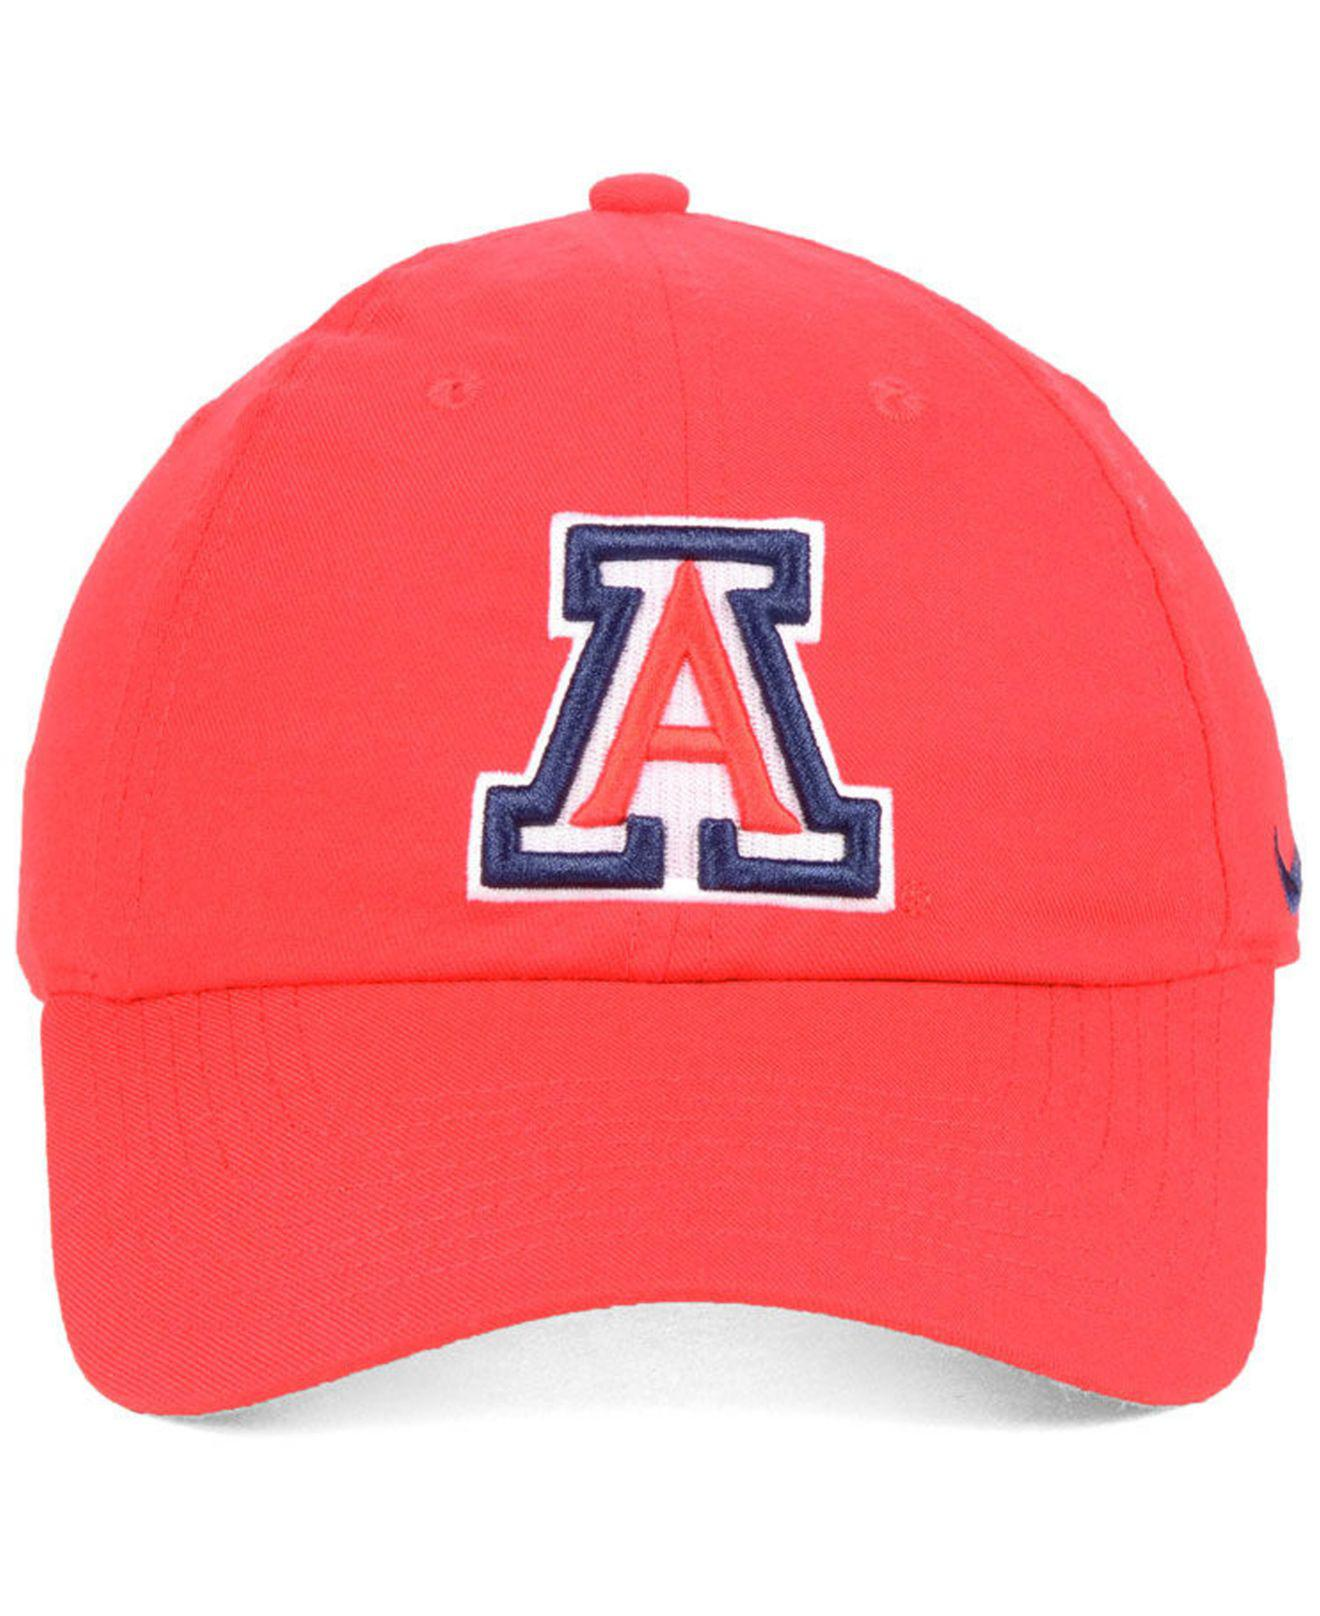 081d322890e ... cheapest lyst nike arizona wildcats core easy adjustable strapback cap  in red for men 45b4d 25bd4